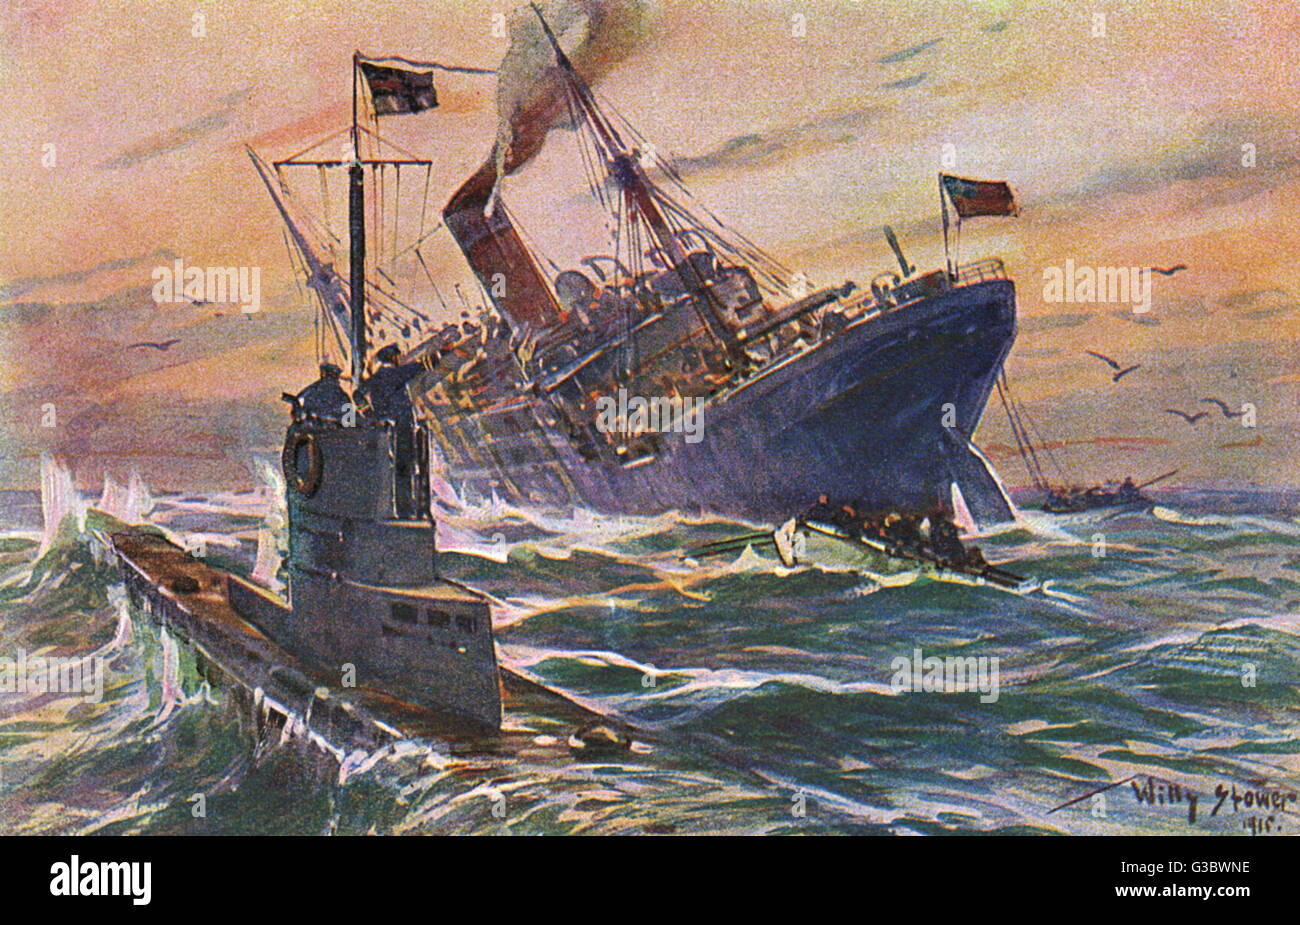 Wwi German U Boat On An English Commercial